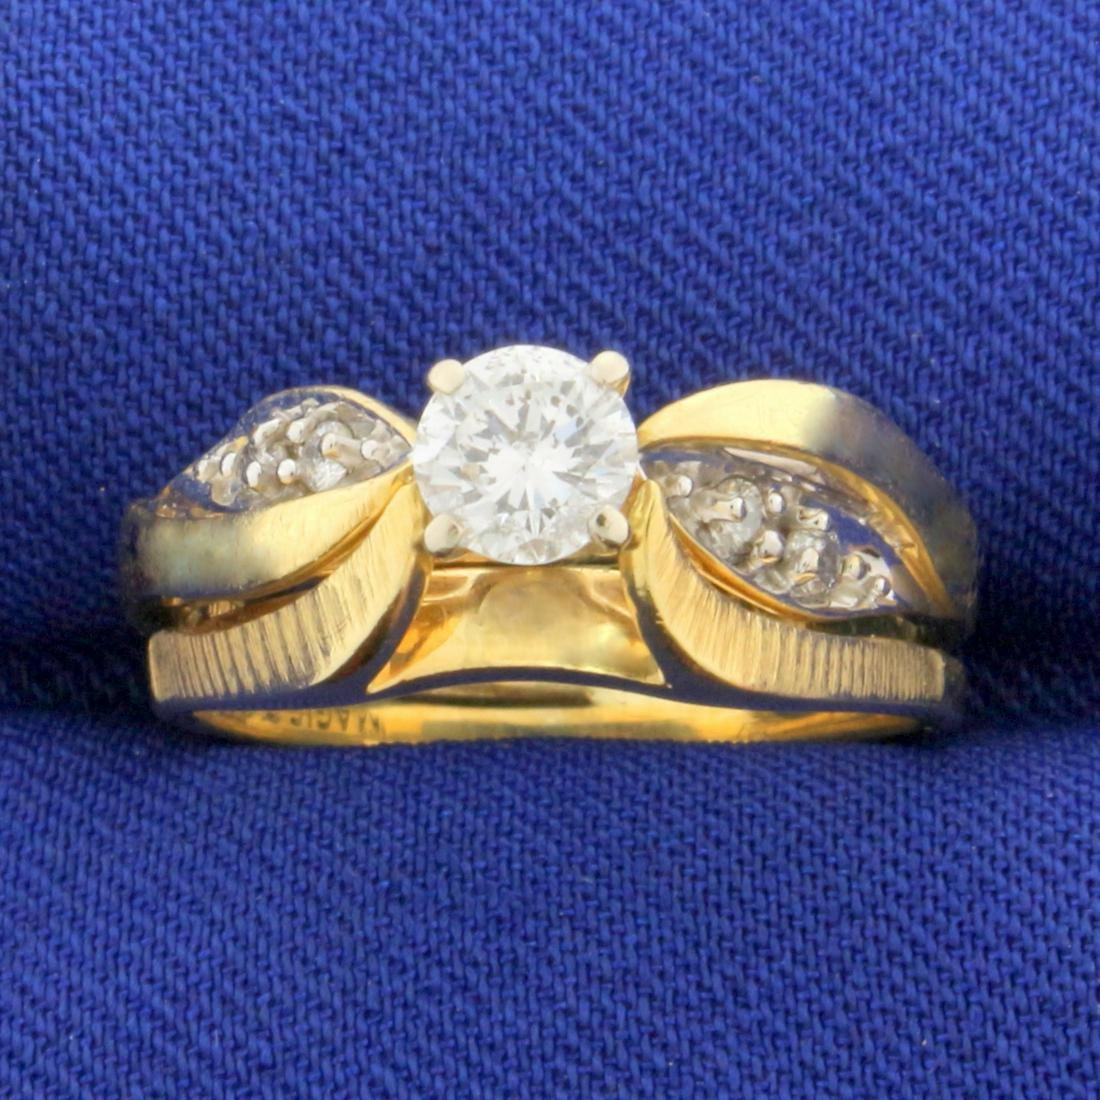 Vintage 1/2 ct TW Diamond Engagement Ring in 14k Yellow